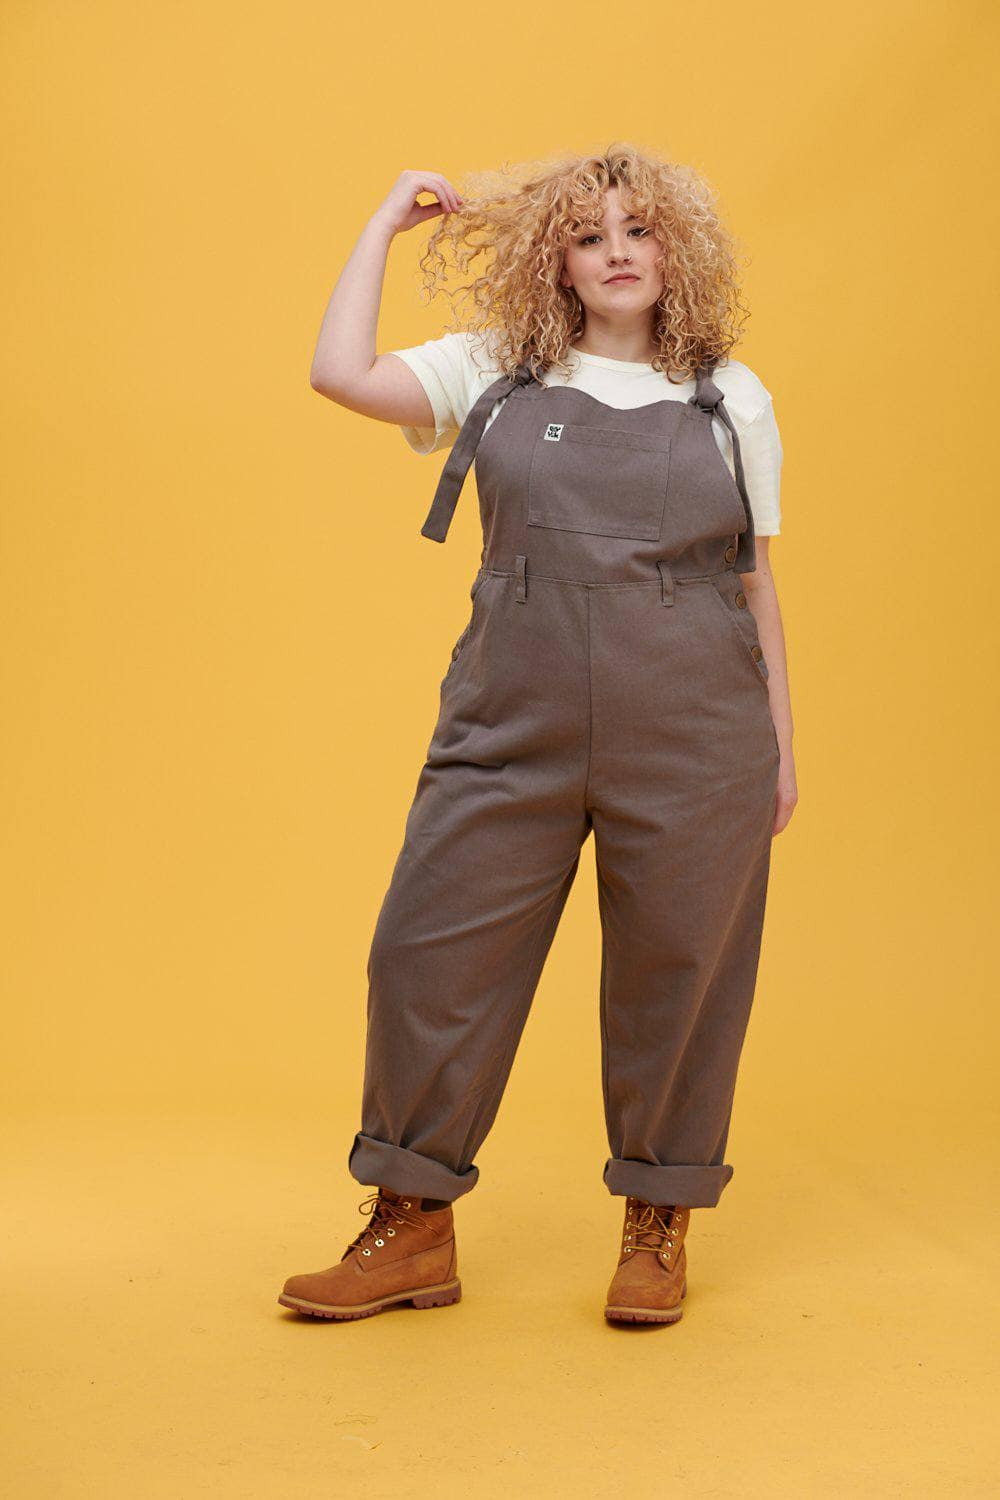 Lucy & Yak Dungarees 'Easton' Organic Cotton Twill  90's Shape Baggy Dungarees in Charcoal Grey